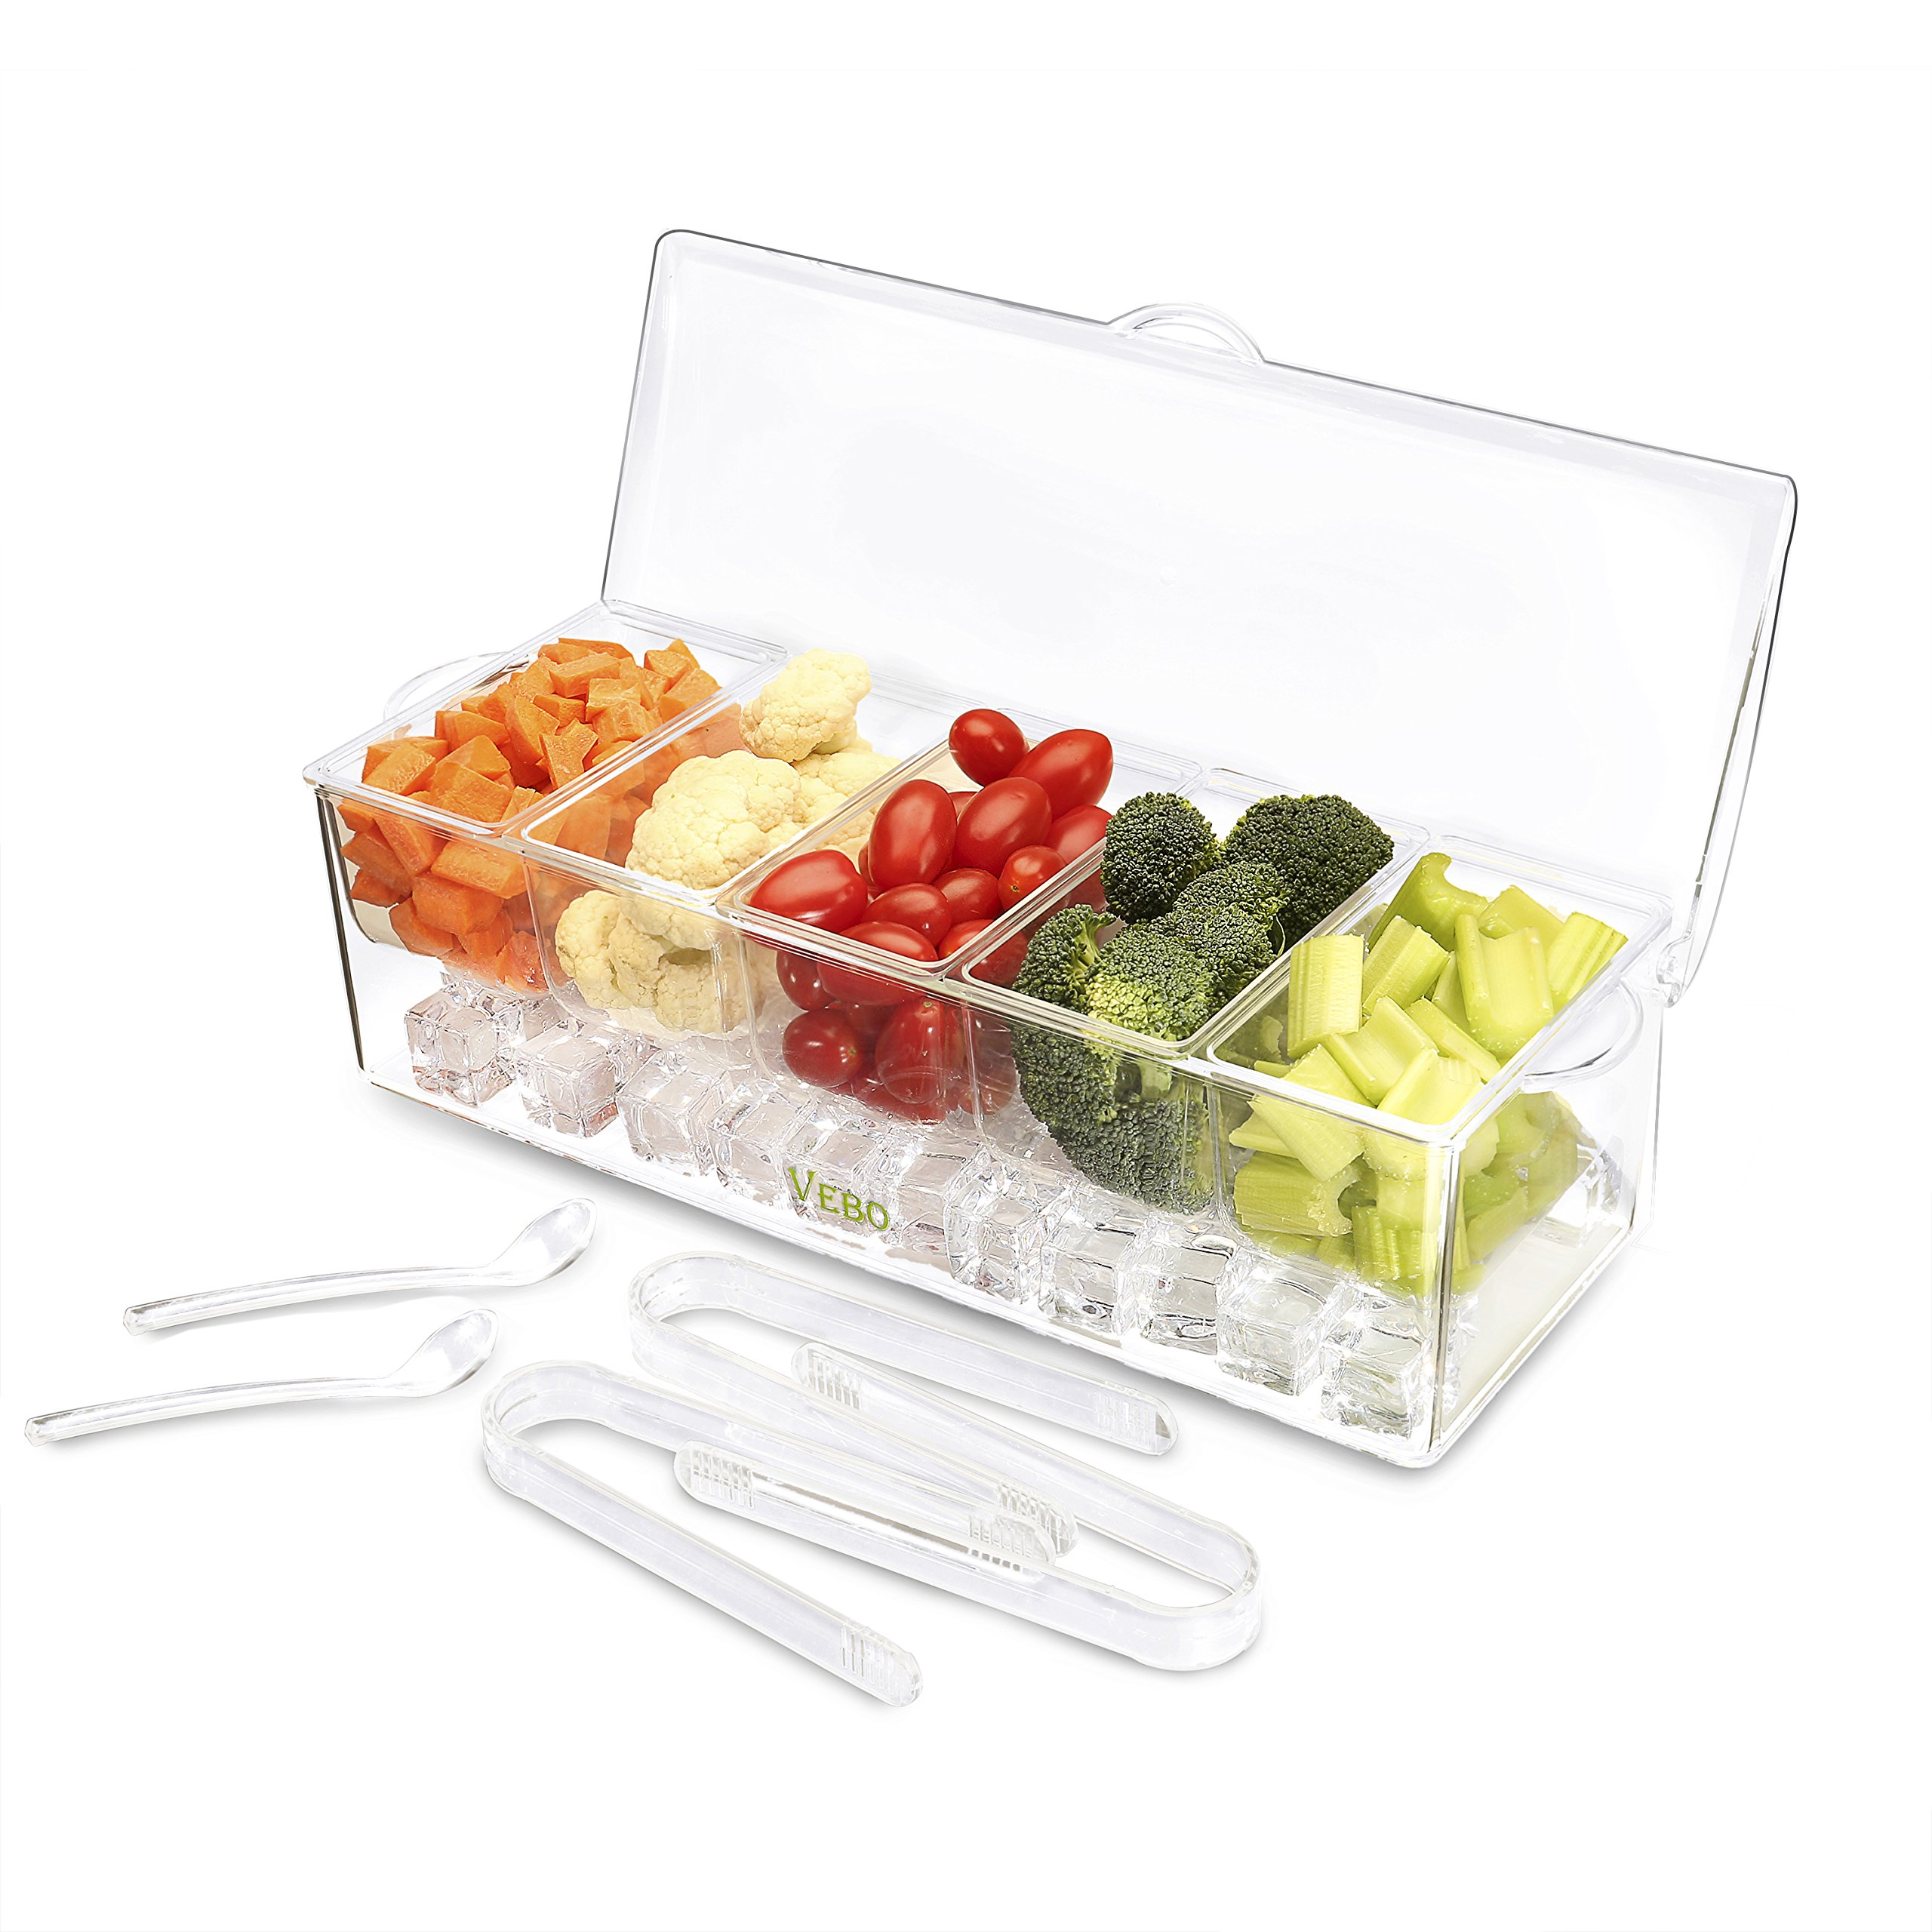 Ice Chilled 5 Compartment Condiment Server Caddy - Serving Tray Container with 5 Removable Dishes with over 2 Cup Capacity Each and Hinged Lid   3 Serving Spoons + 3 Tongs Included By VeBo